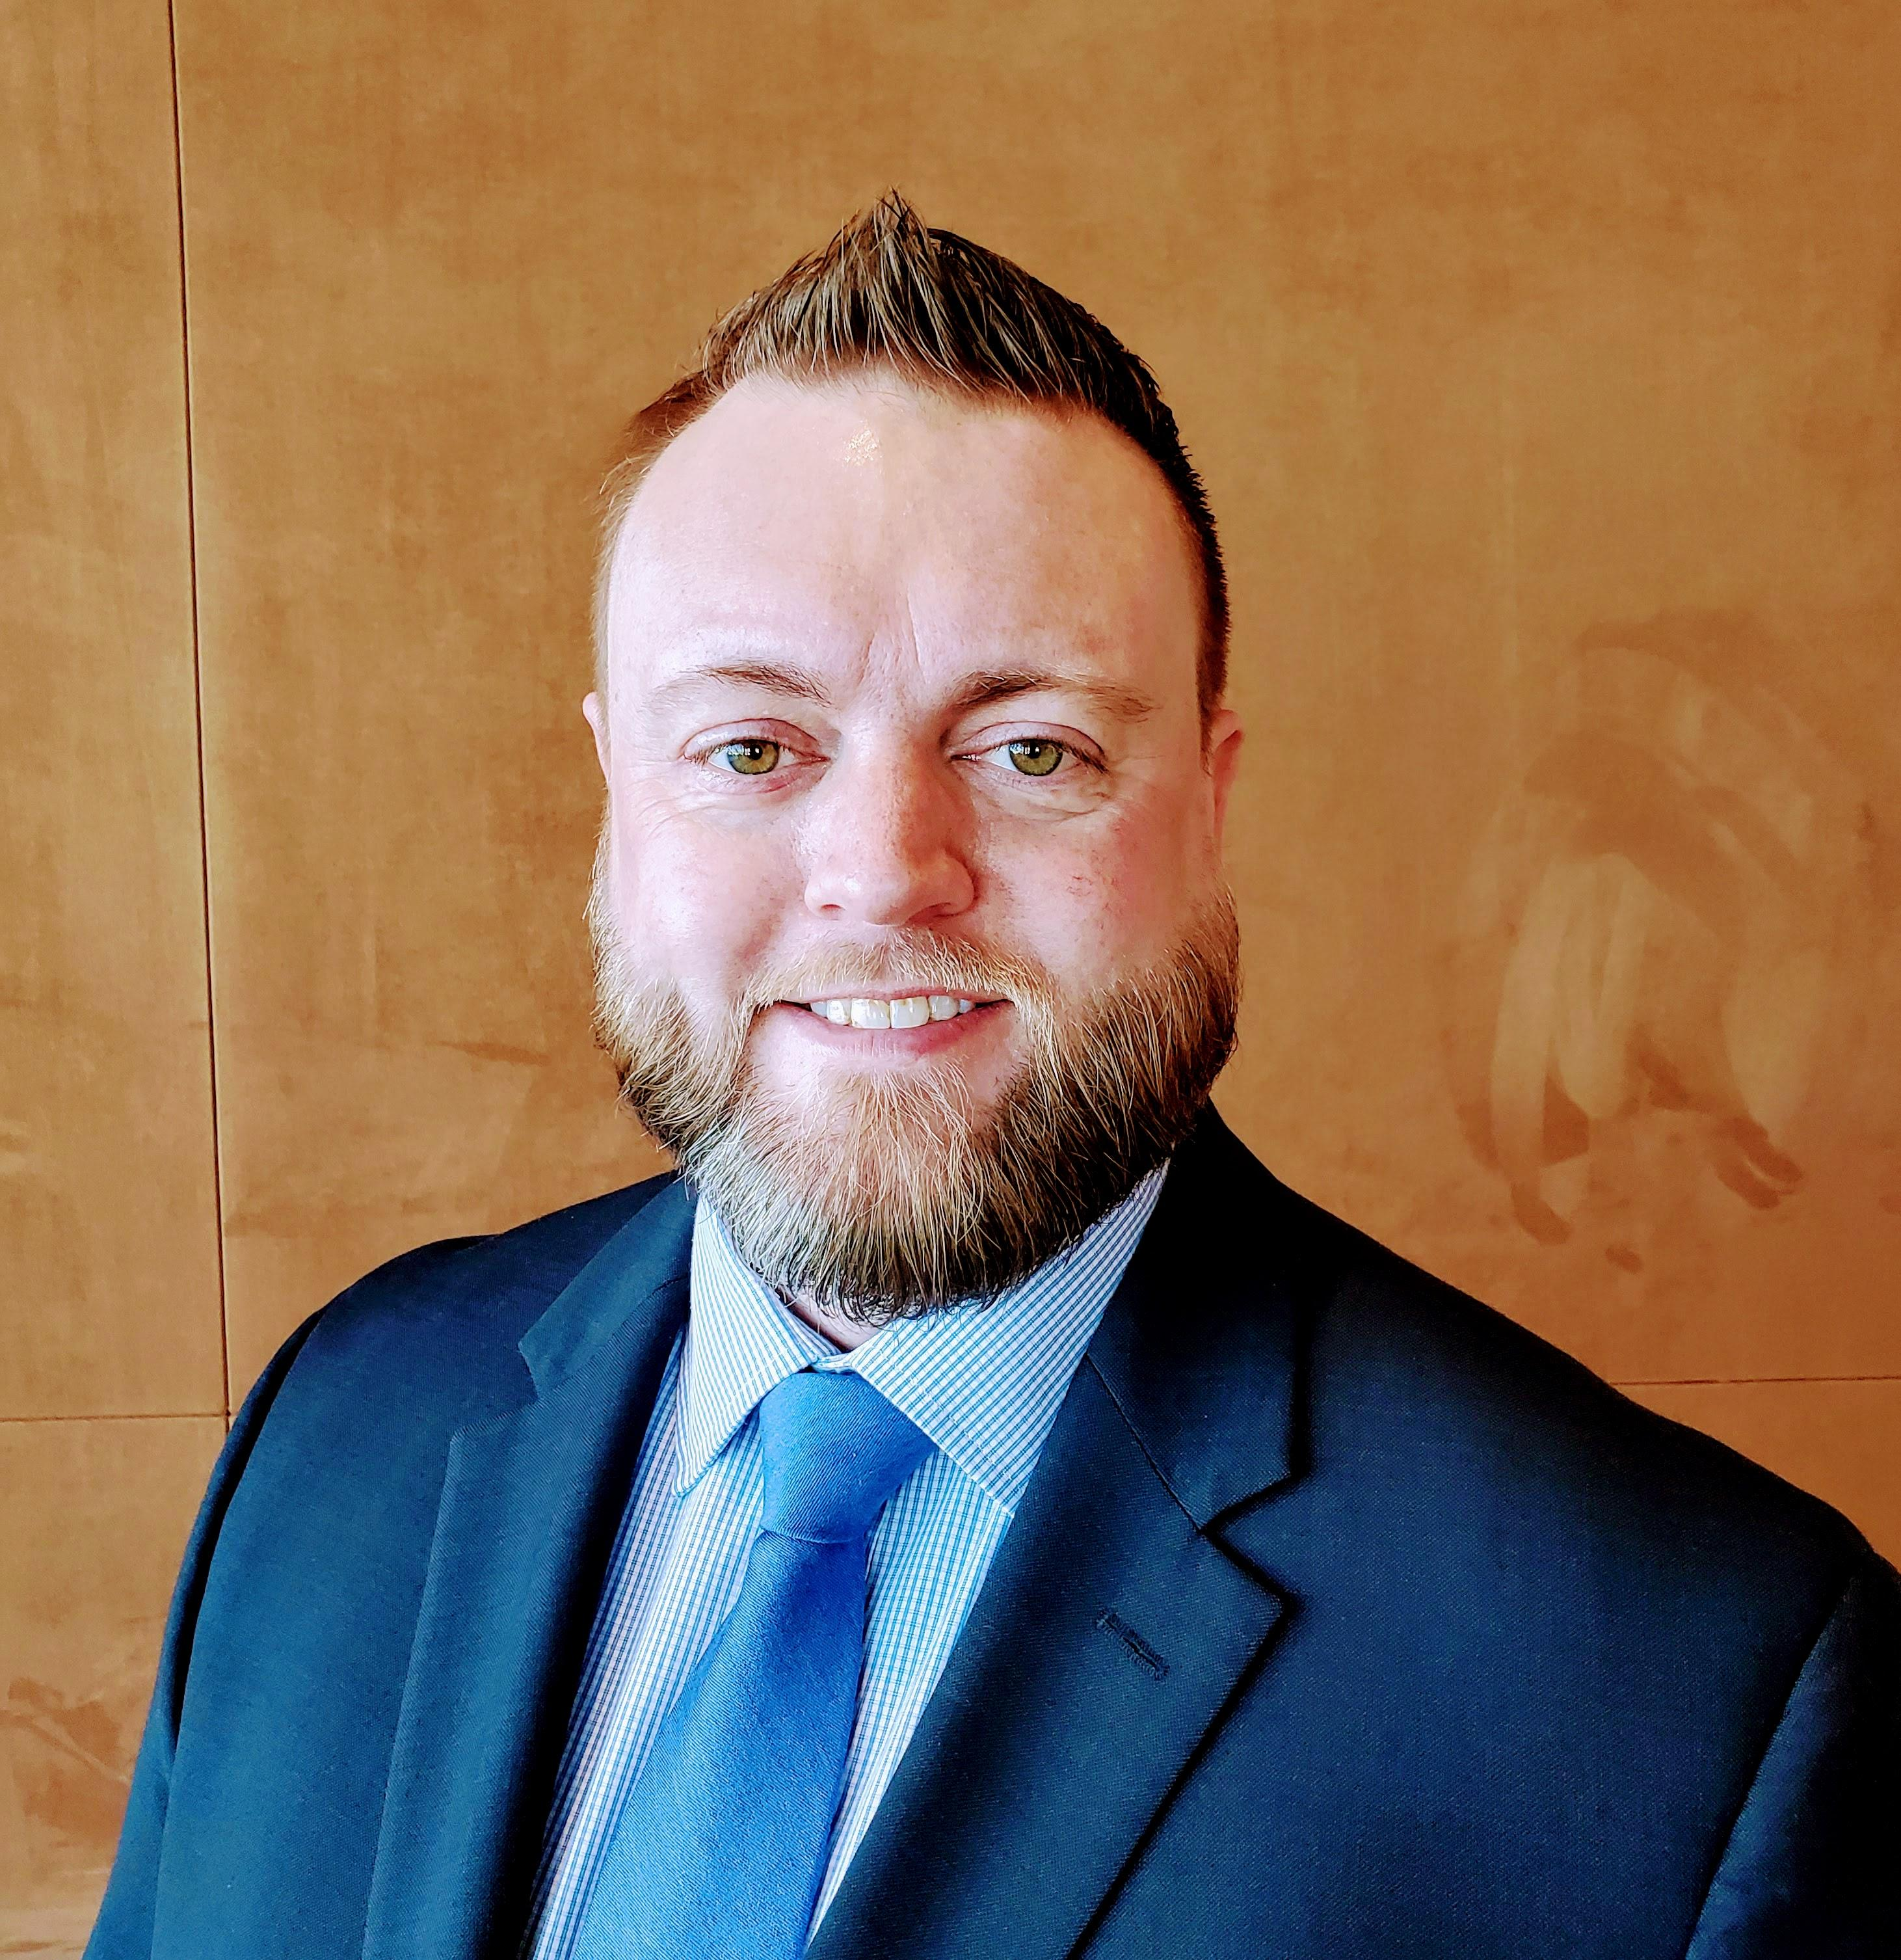 KYLE N. BOSWORTH Financial Professional & Insurance Agent